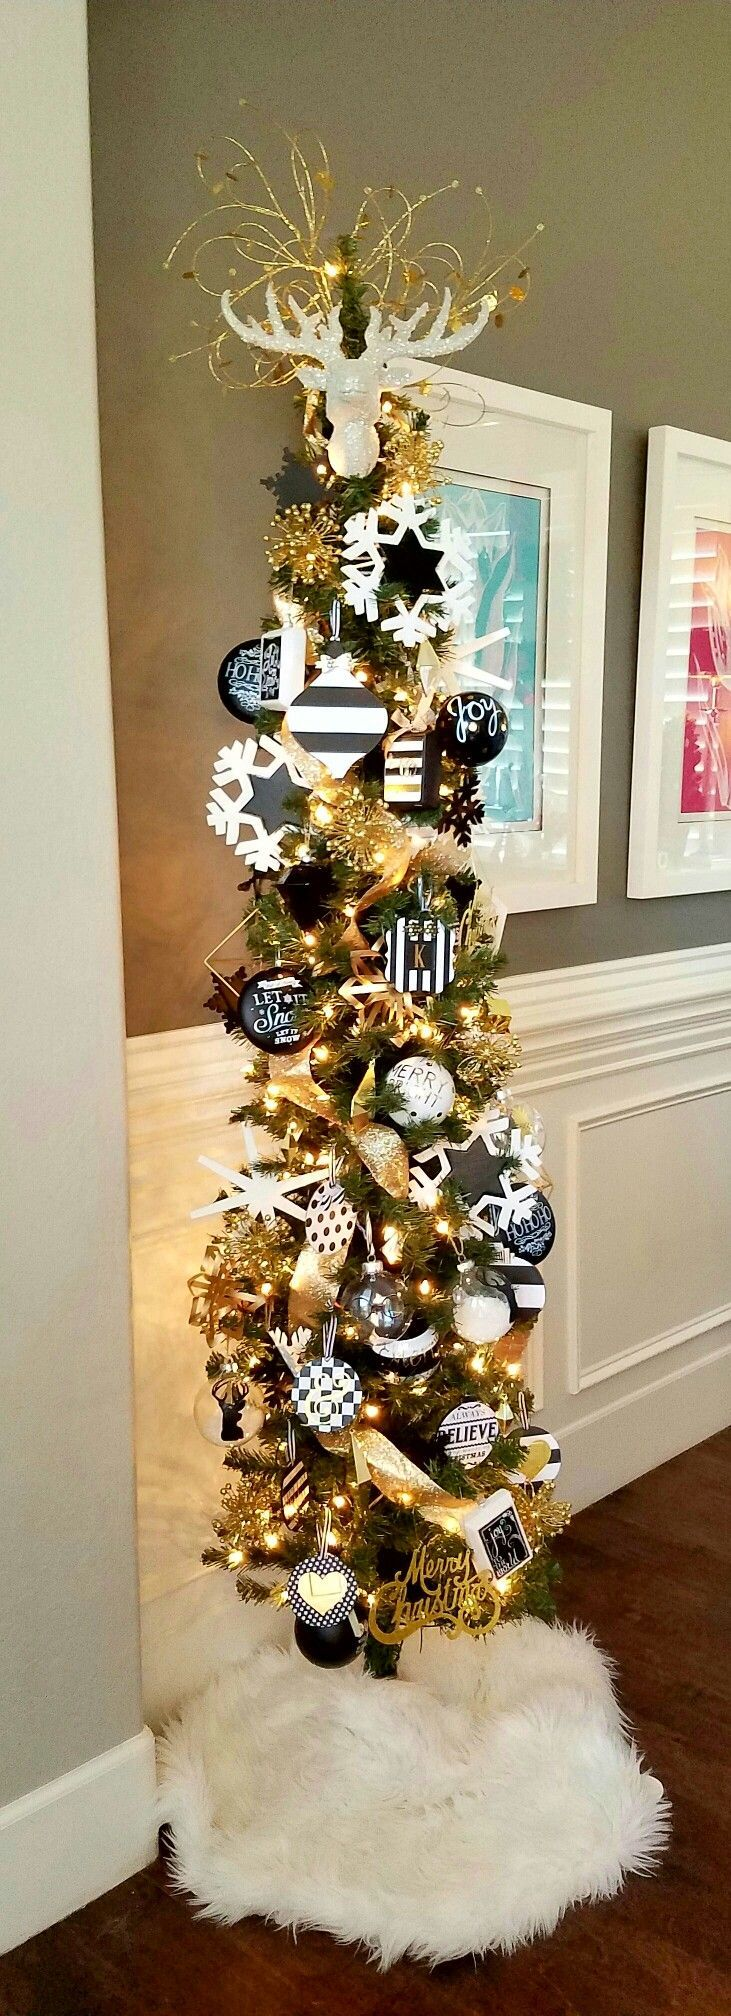 Black, white and gold pencil Christmas tree.  Kate spade inspired!